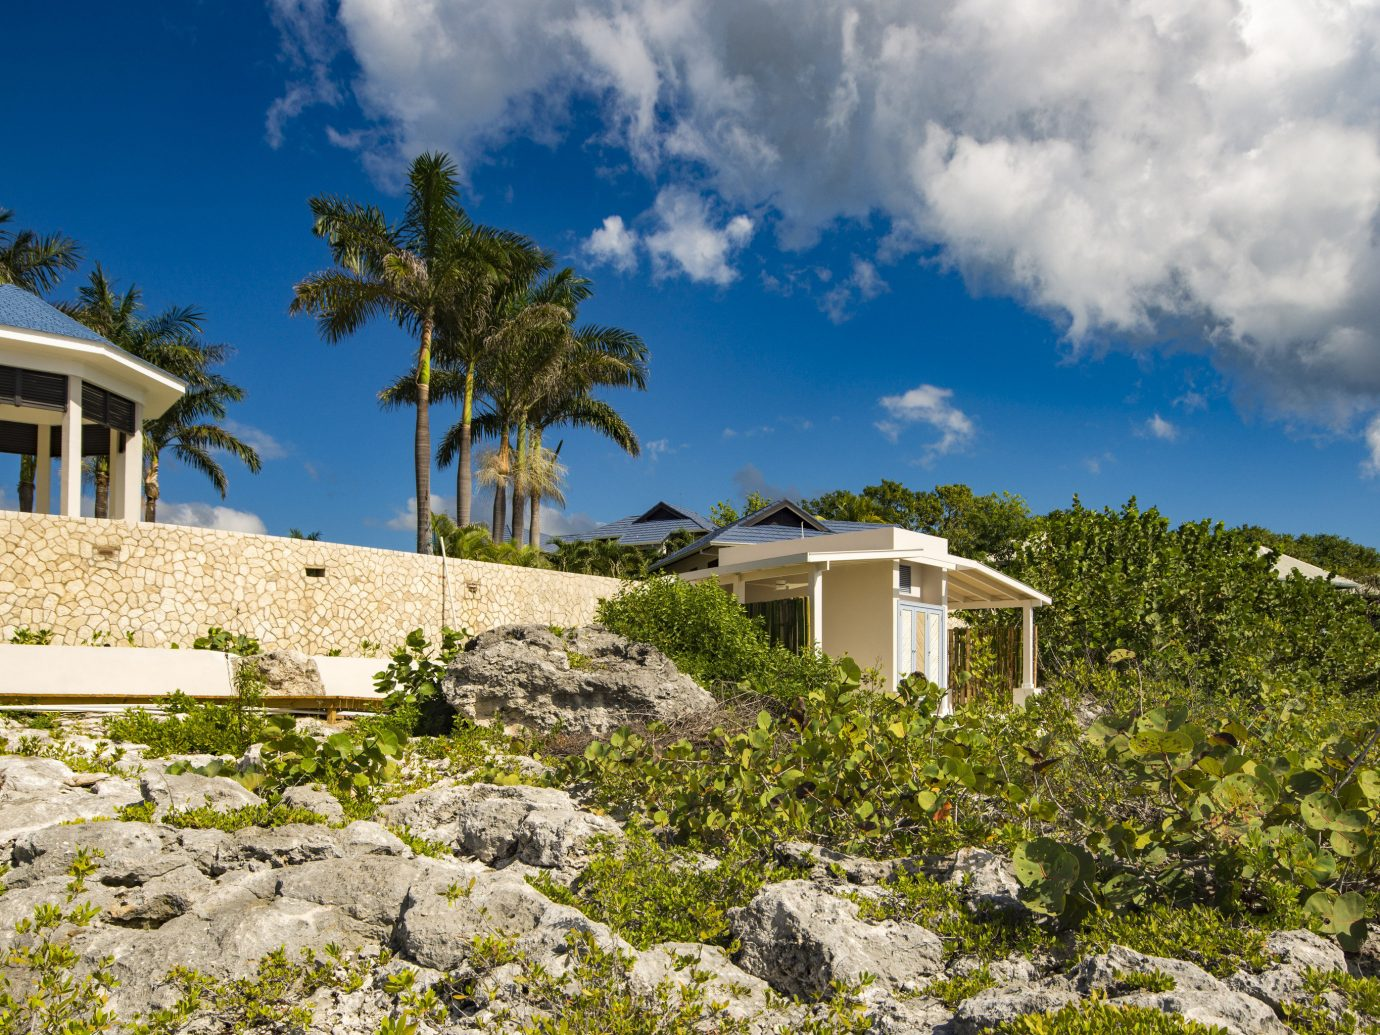 Hotels outdoor sky grass building tree Sea vacation Coast Ocean house estate cloud Beach landscape rural area arecales bay caribbean